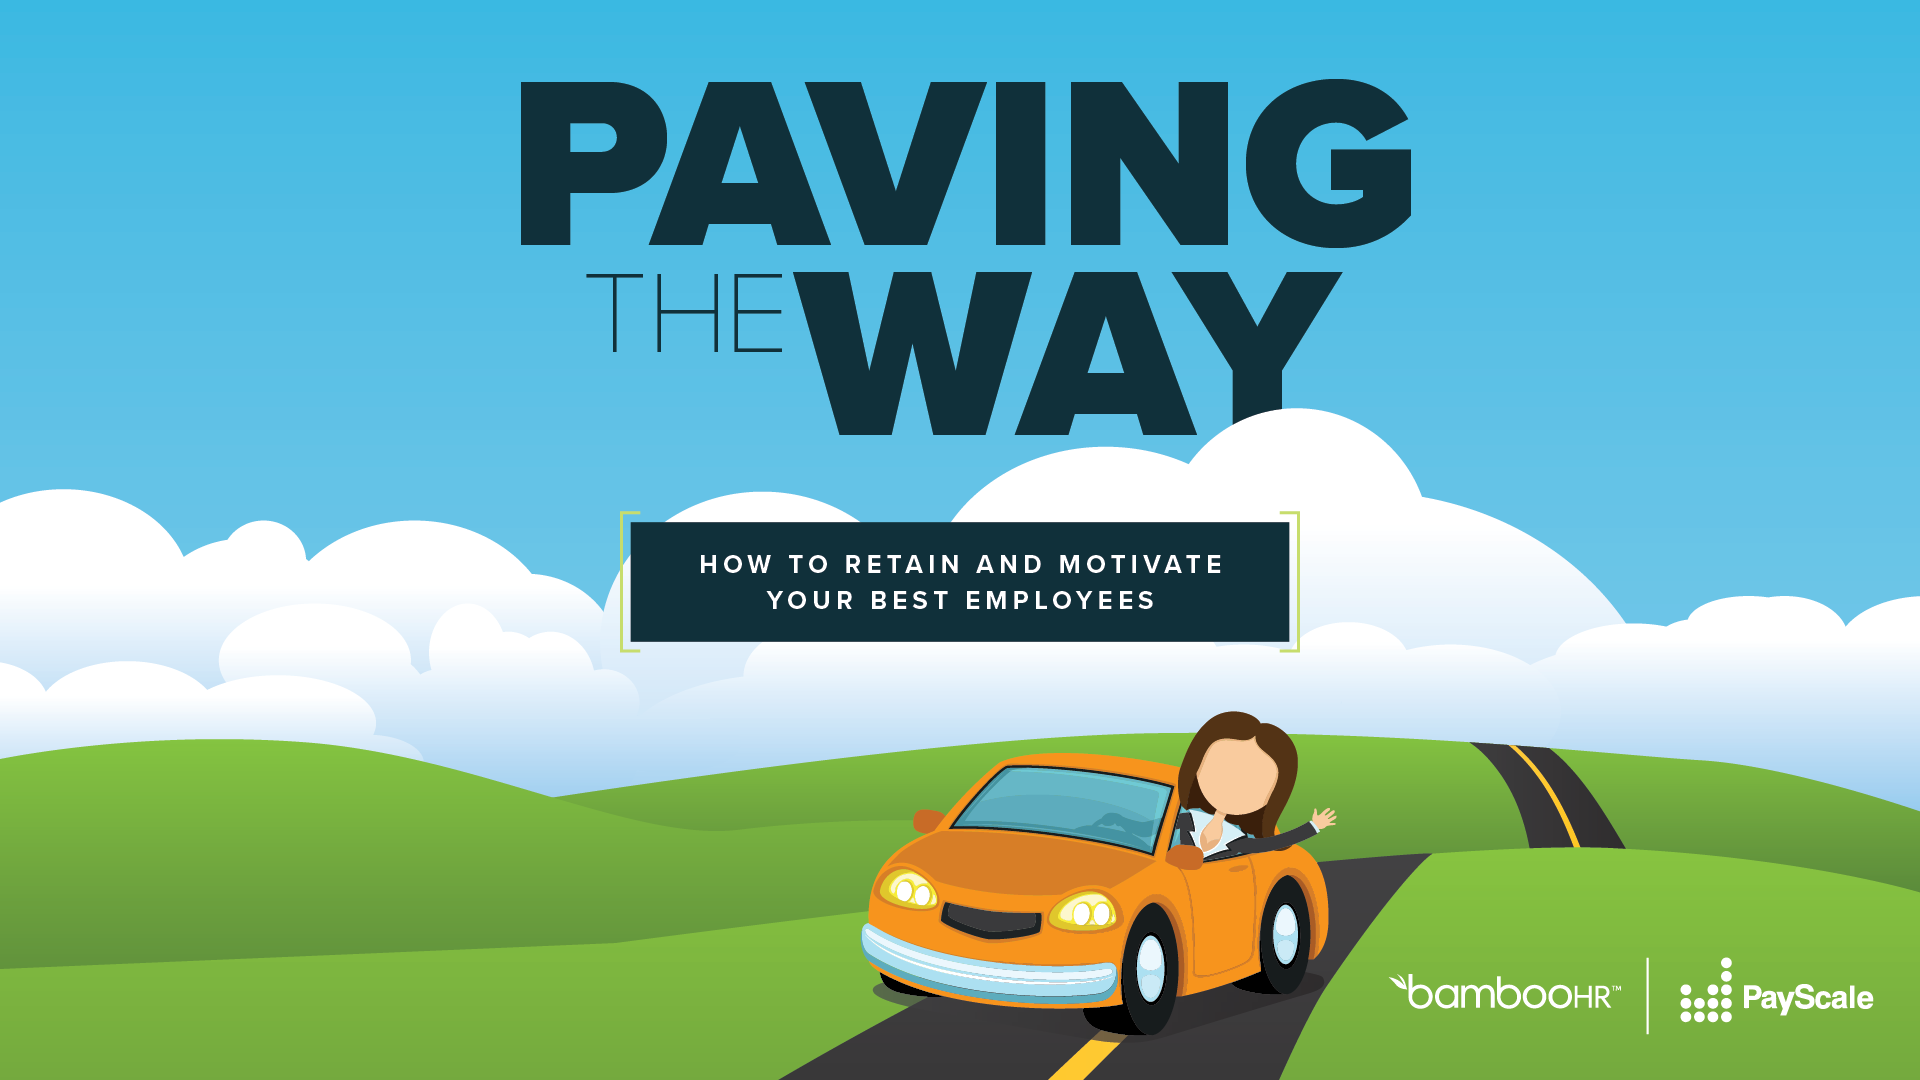 Paving the Way: How to Retain and Motivate Your Best Employees